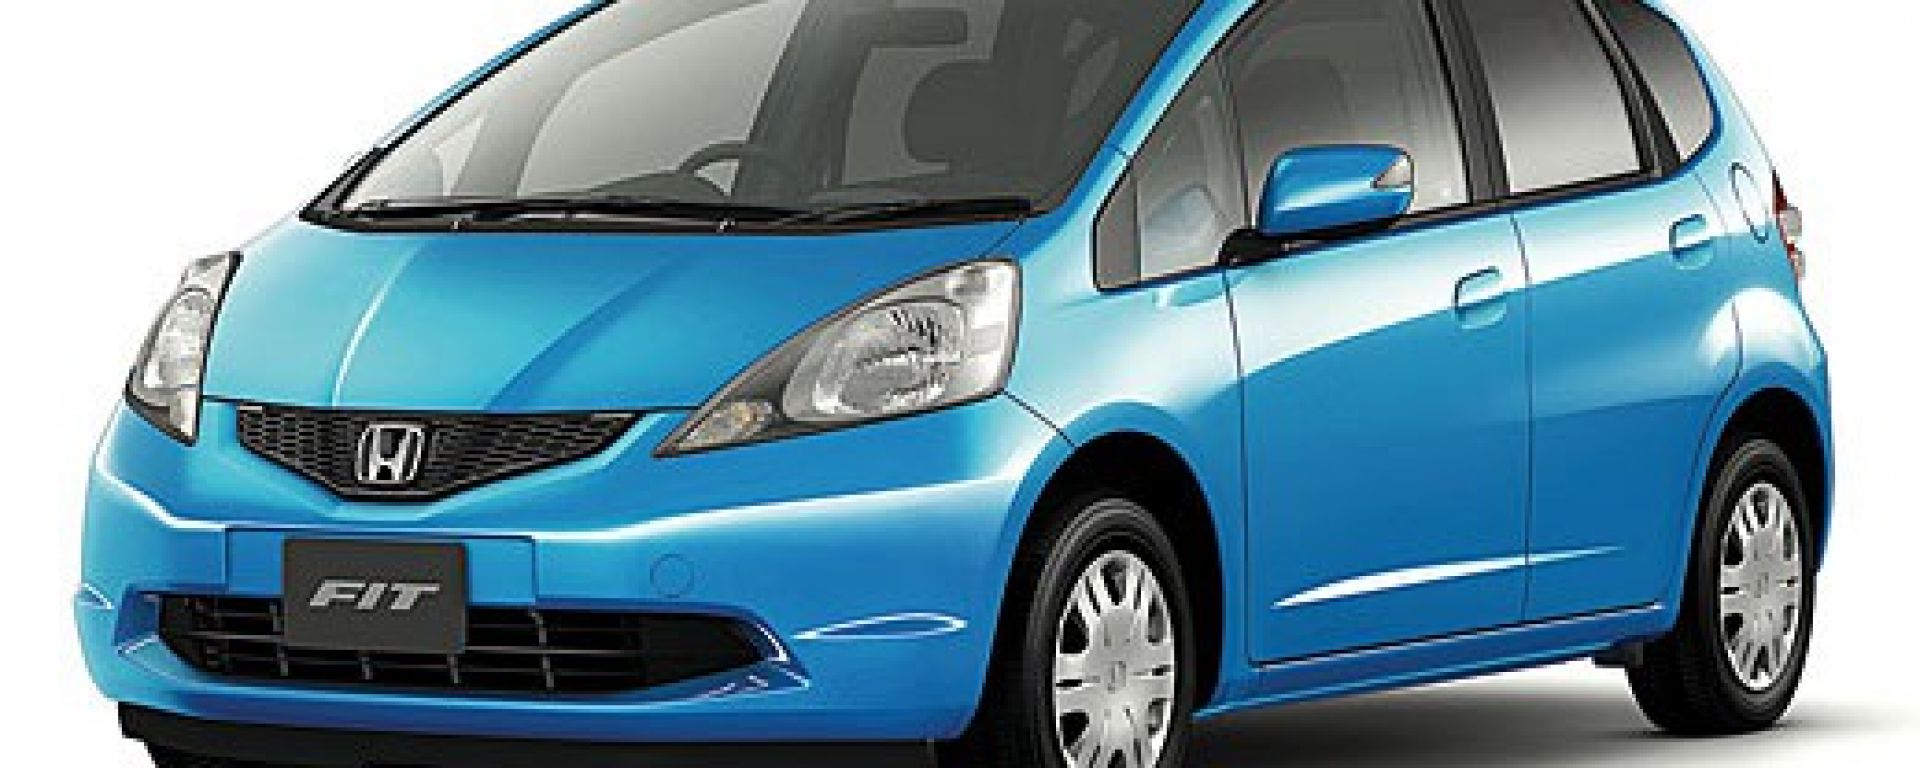 Honda Fit, la nuova Jazz